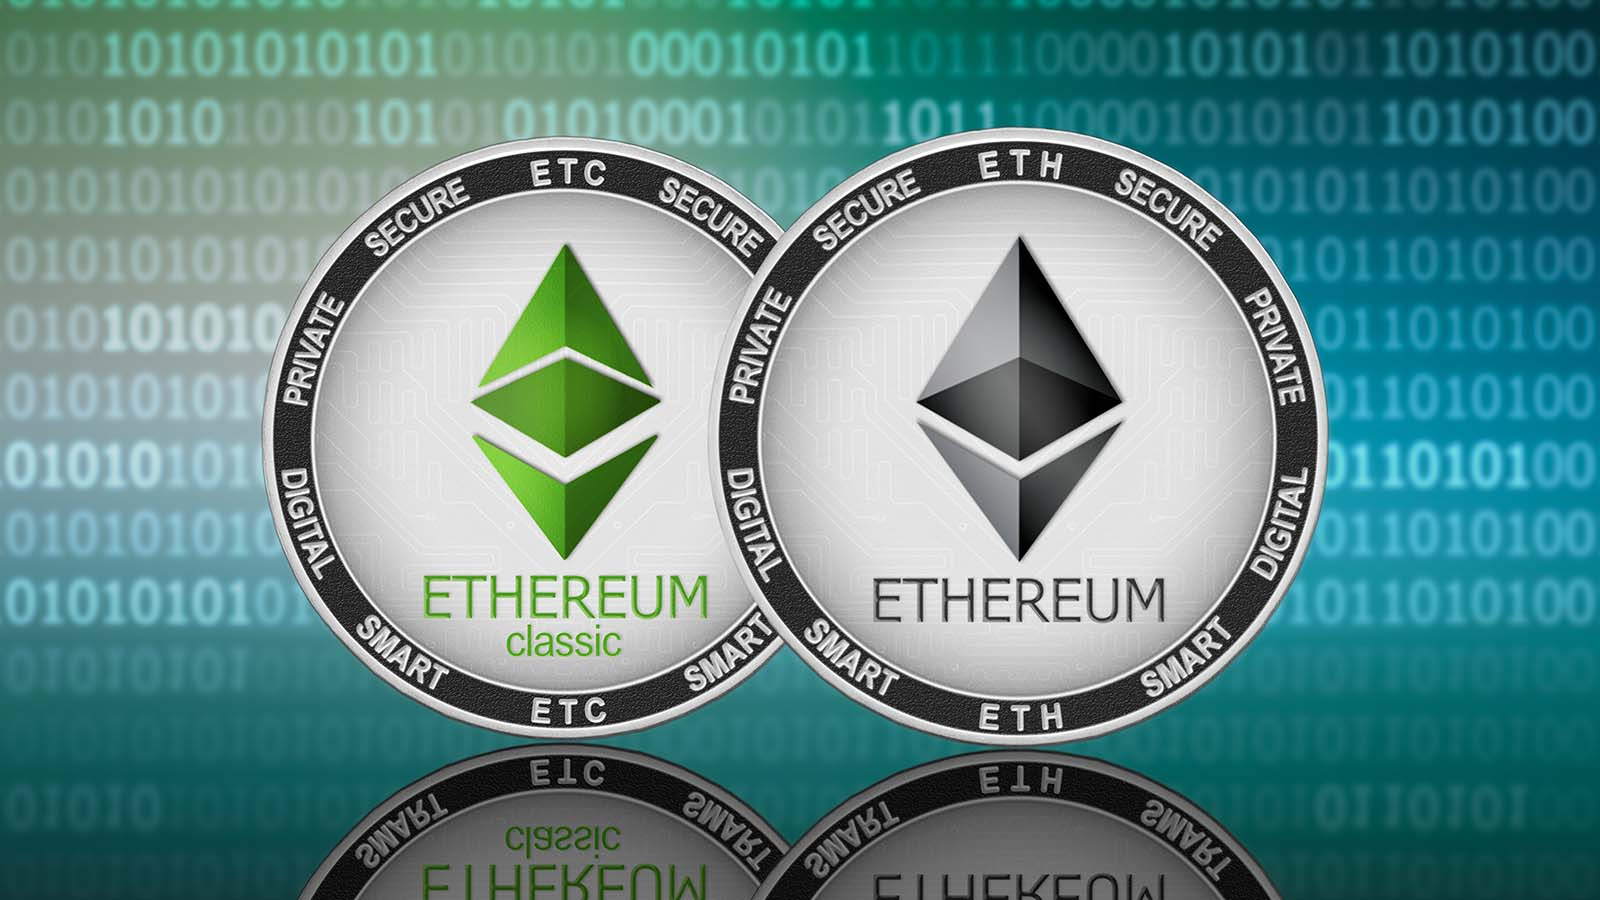 Ethereum Classic Is Only Interesting Because of Its Name